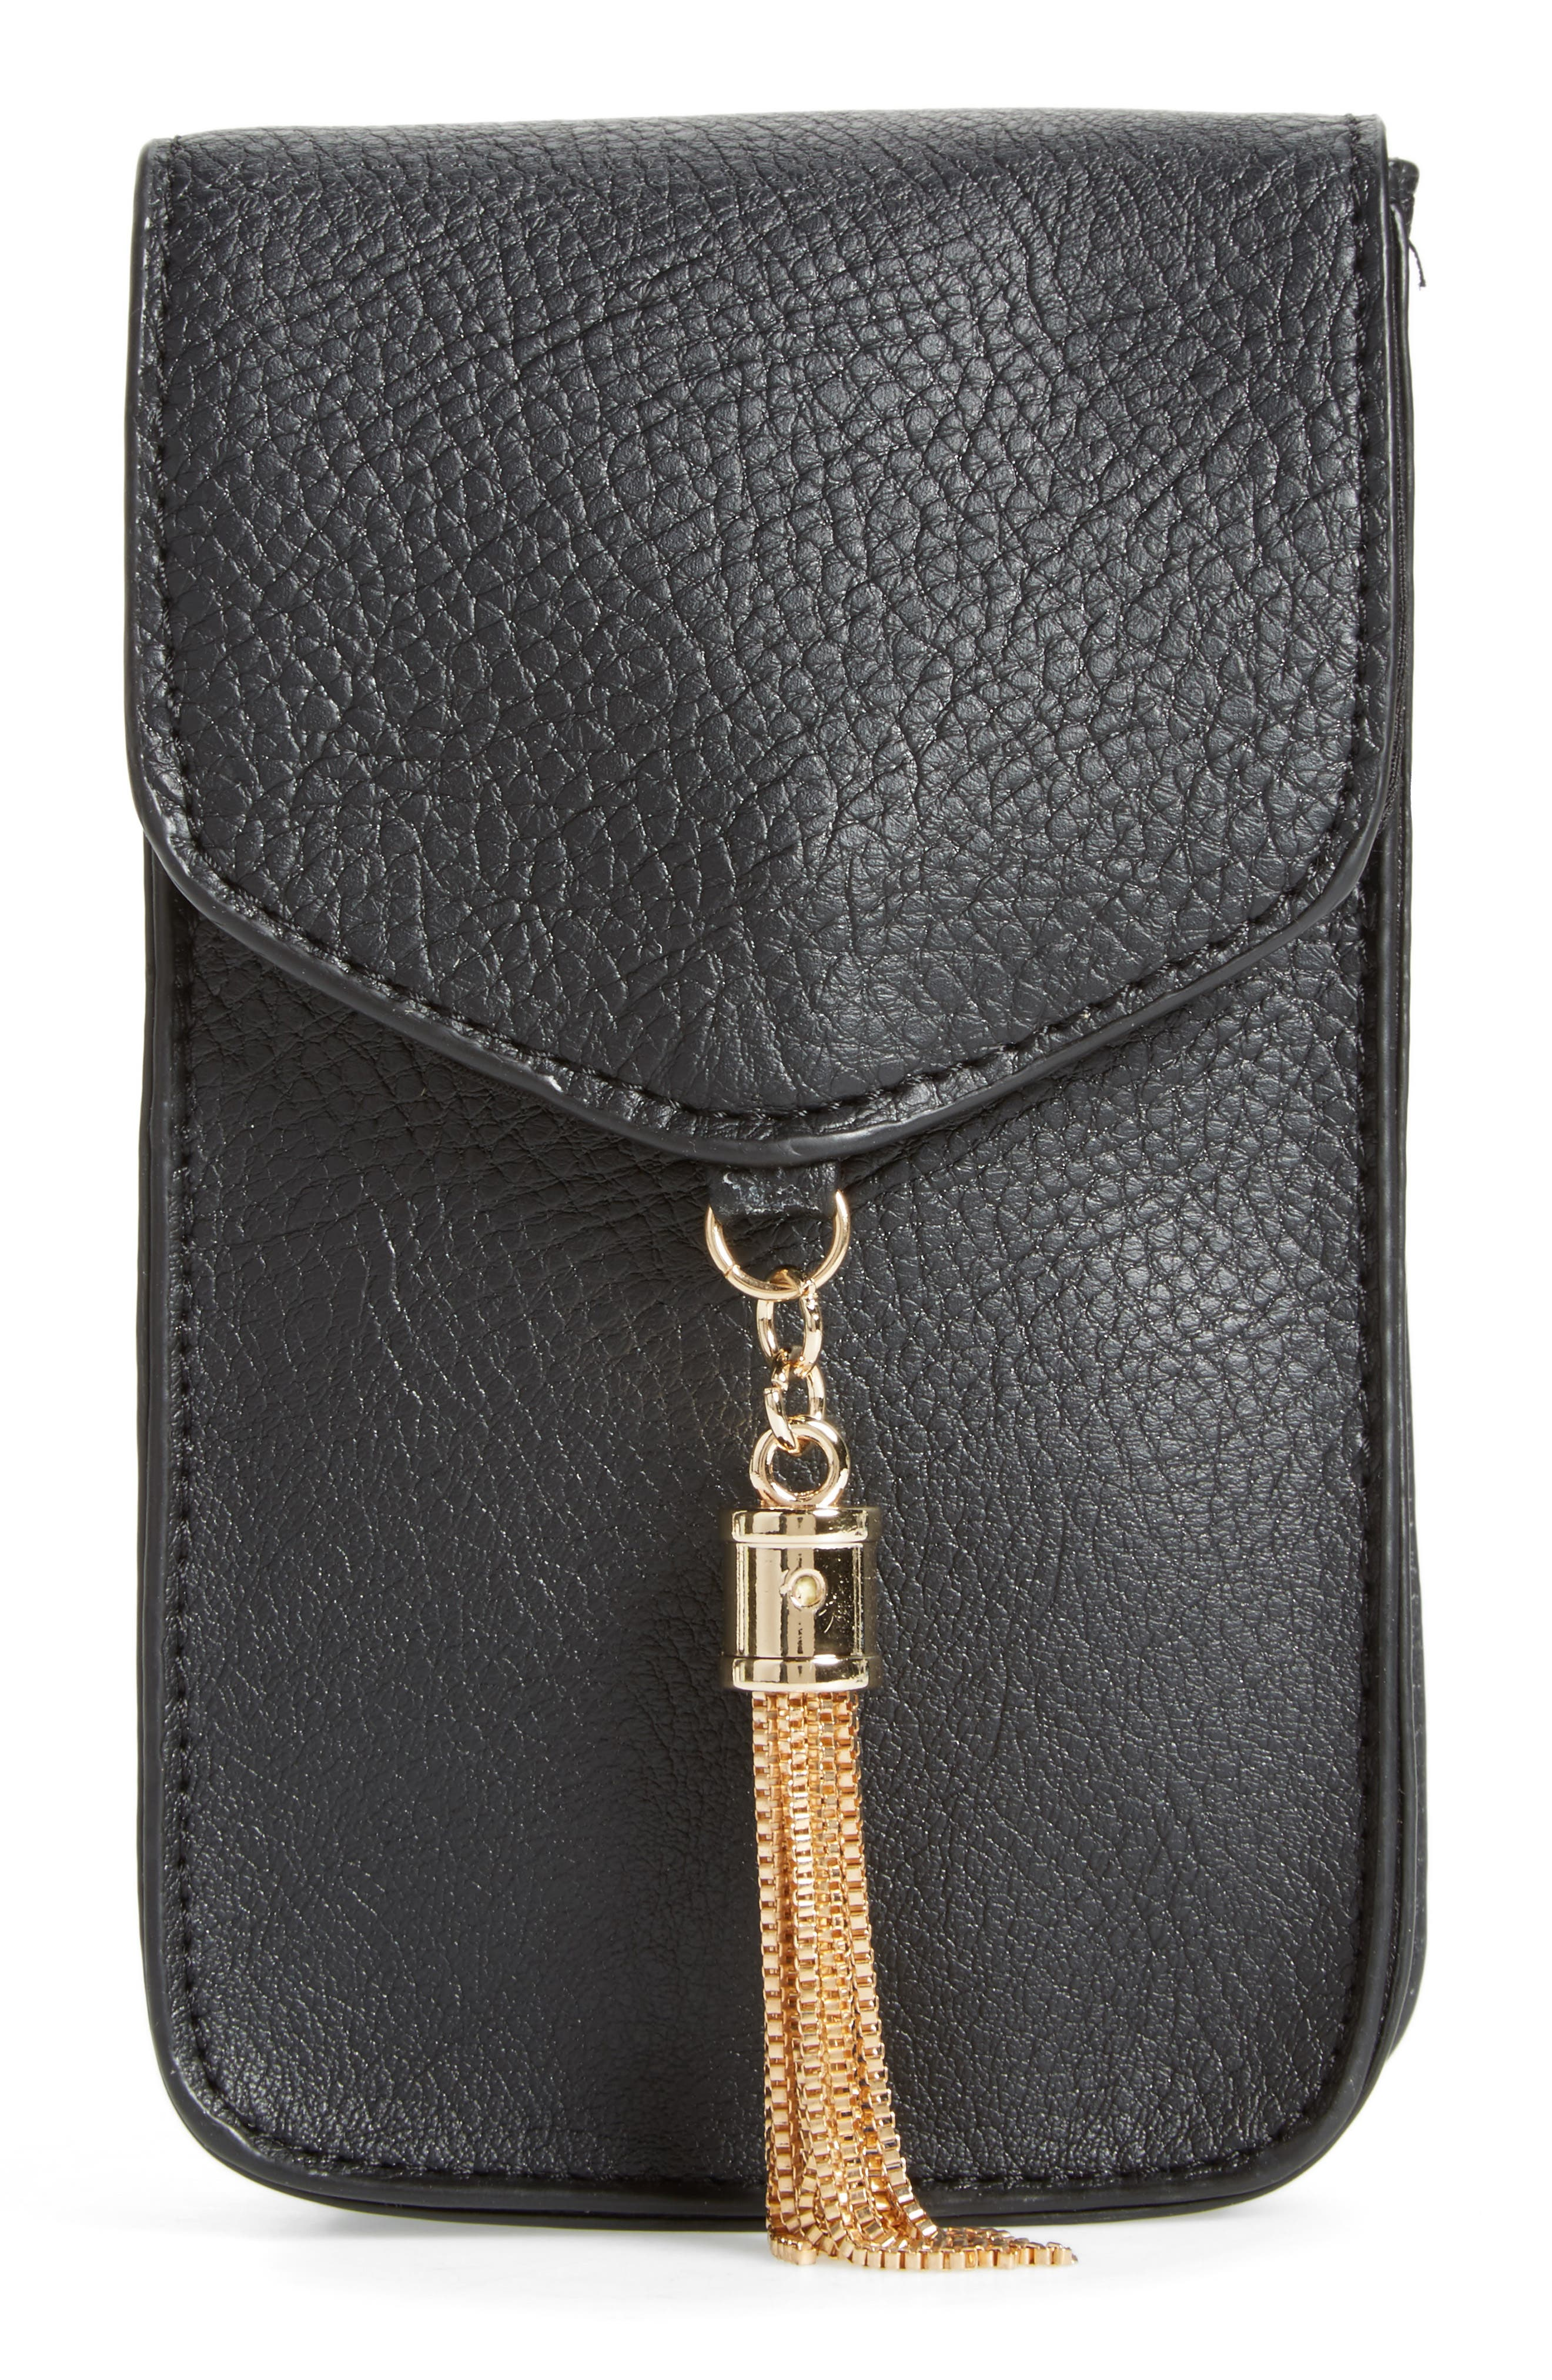 Amici Accessories Tassel Faux Leather Phone Crossbody Bag